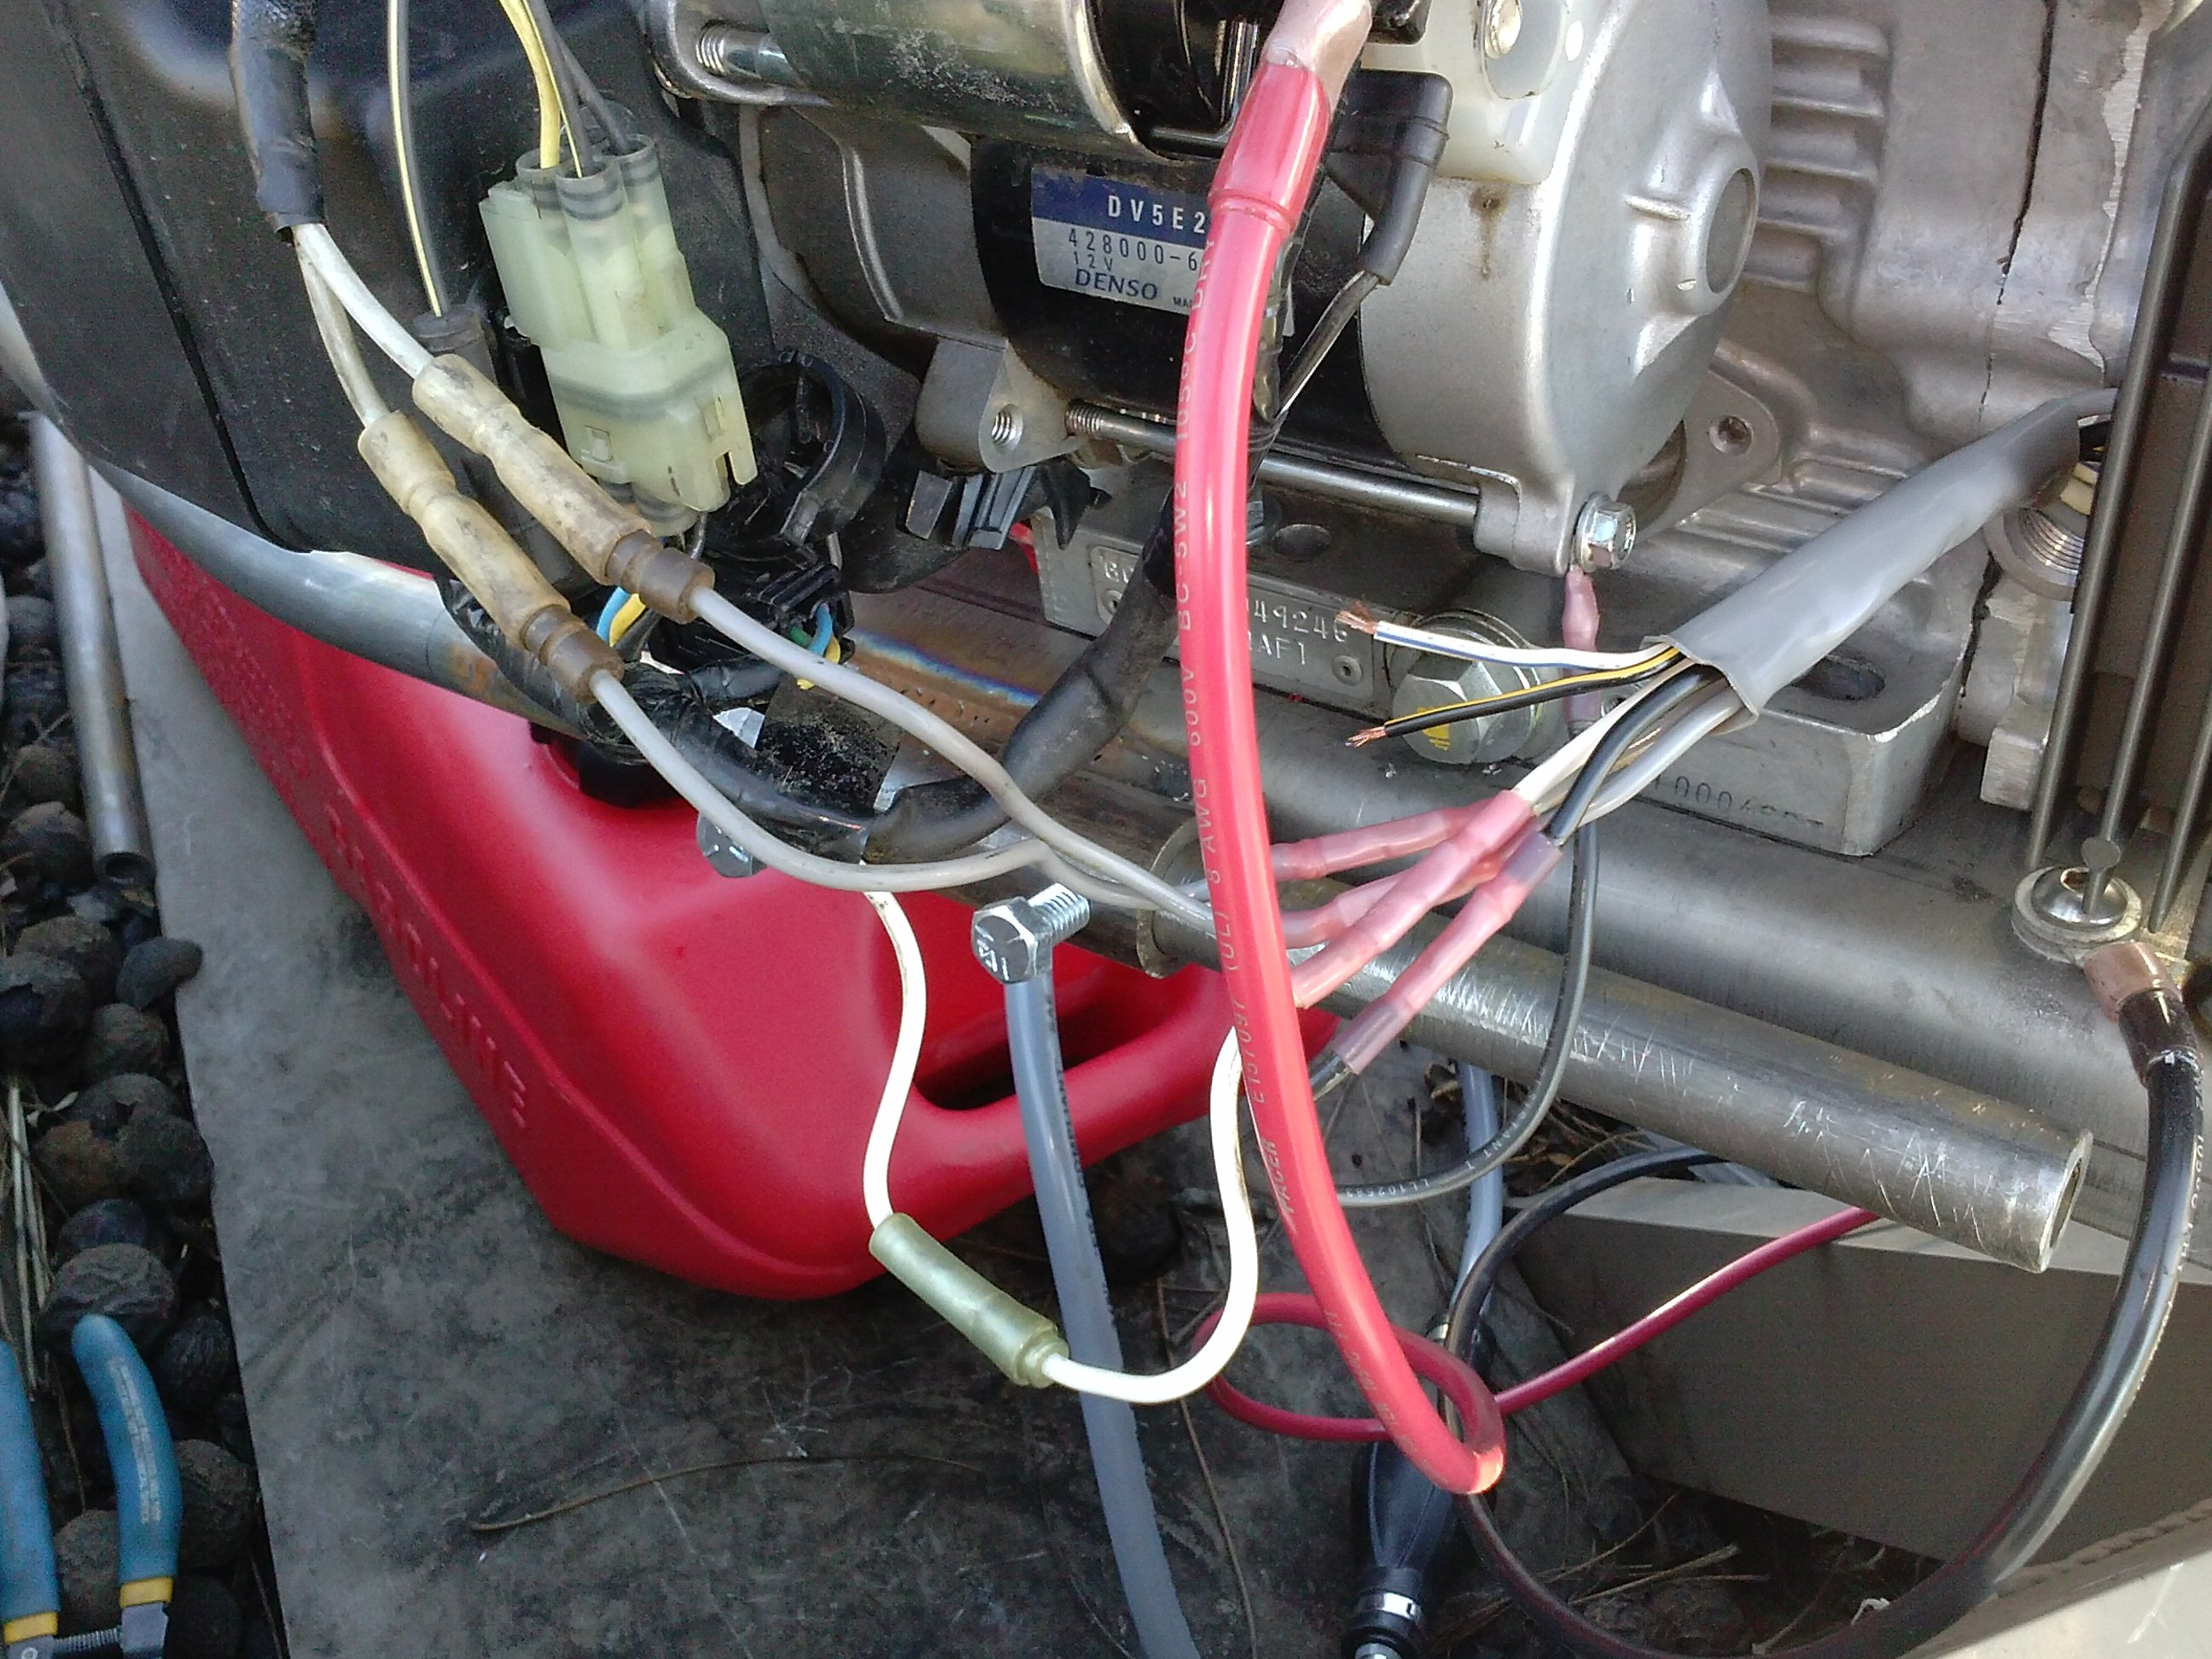 2013 12 01_204034_cam006151 i need help troubleshooting the charging system on a honda gx630 honda gx390 ignition wiring diagram at cos-gaming.co